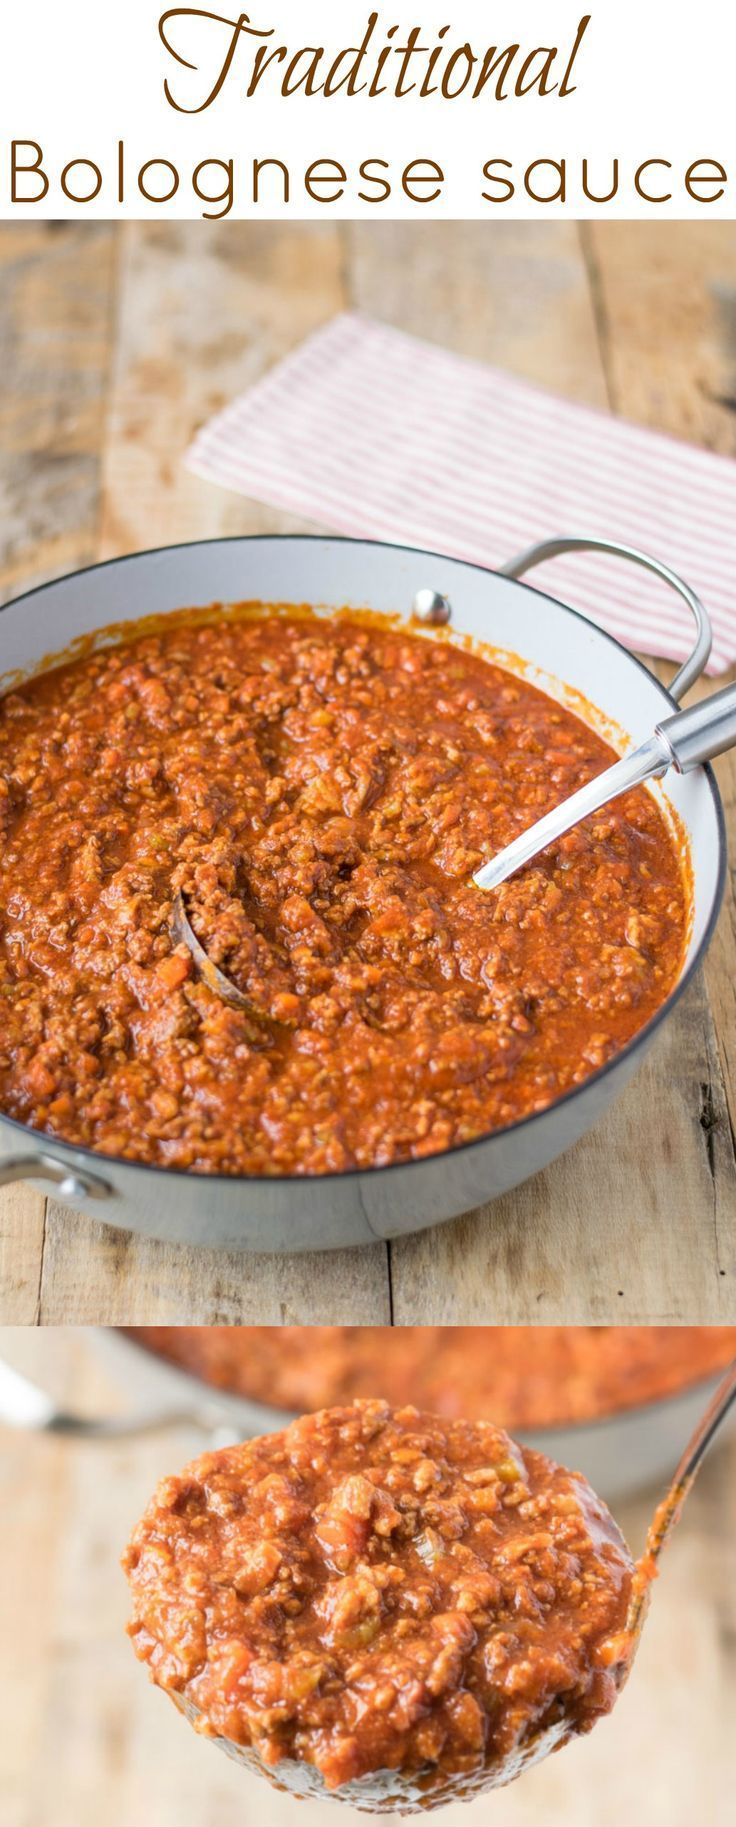 This traditional Bolognese sauce is made using all the authentic ingredients like beef, pork, fresh tomato purée, then cooked low and slow for hours to develop a rich, hearty taste.